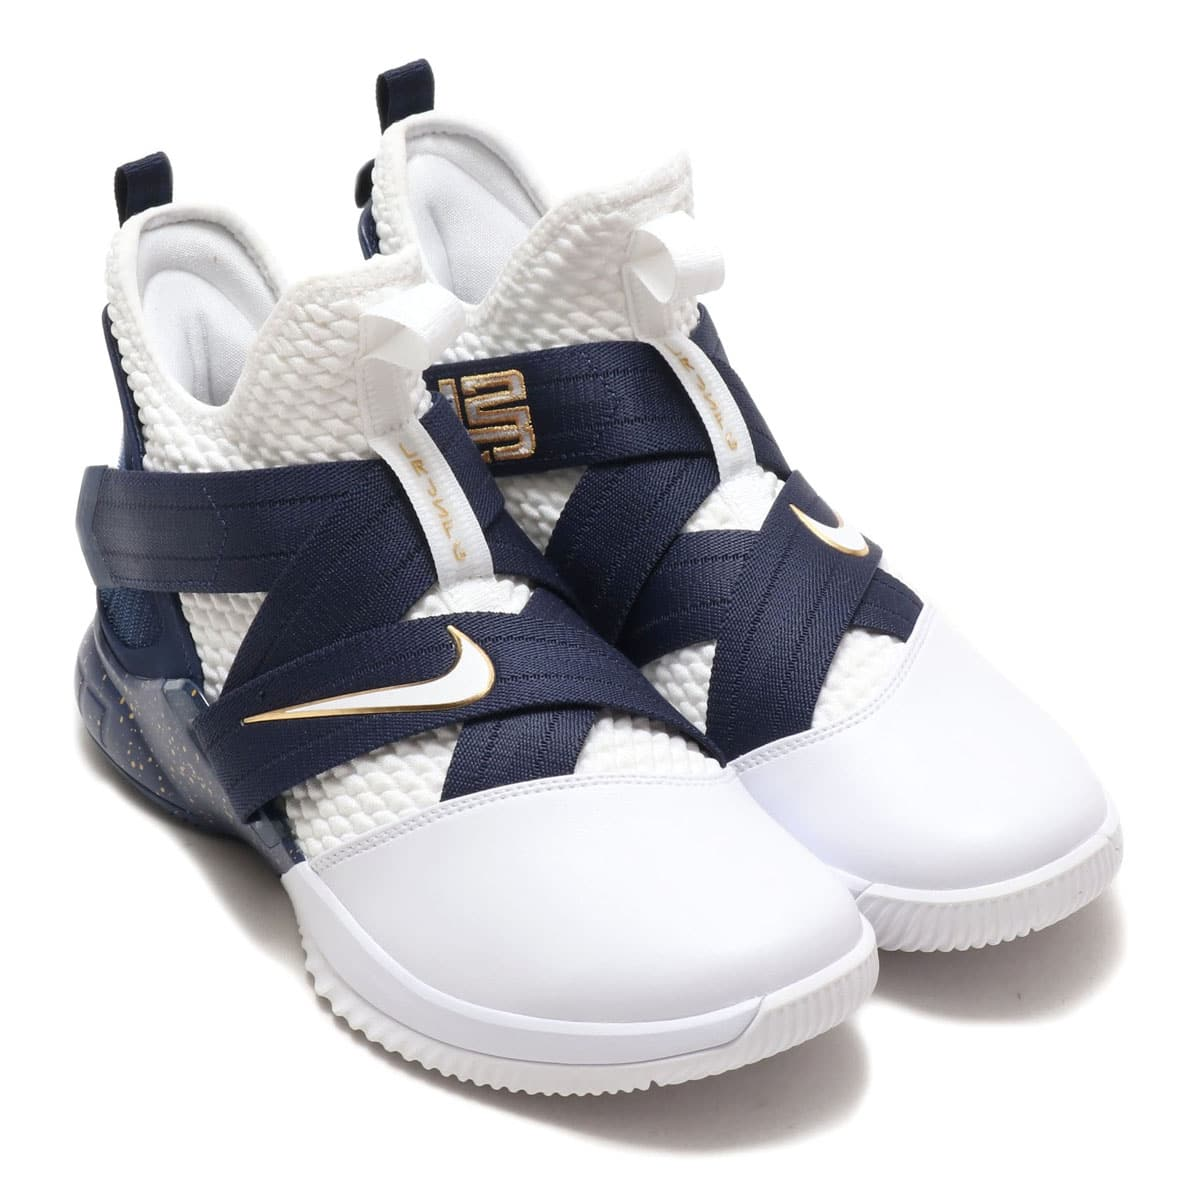 dccdf877e5331 NIKE LEBRON SOLDIER XII SFG EP WHITE/WHITE-MIDNIGHT NAVY-MINERAL  YELLOW_photo_large